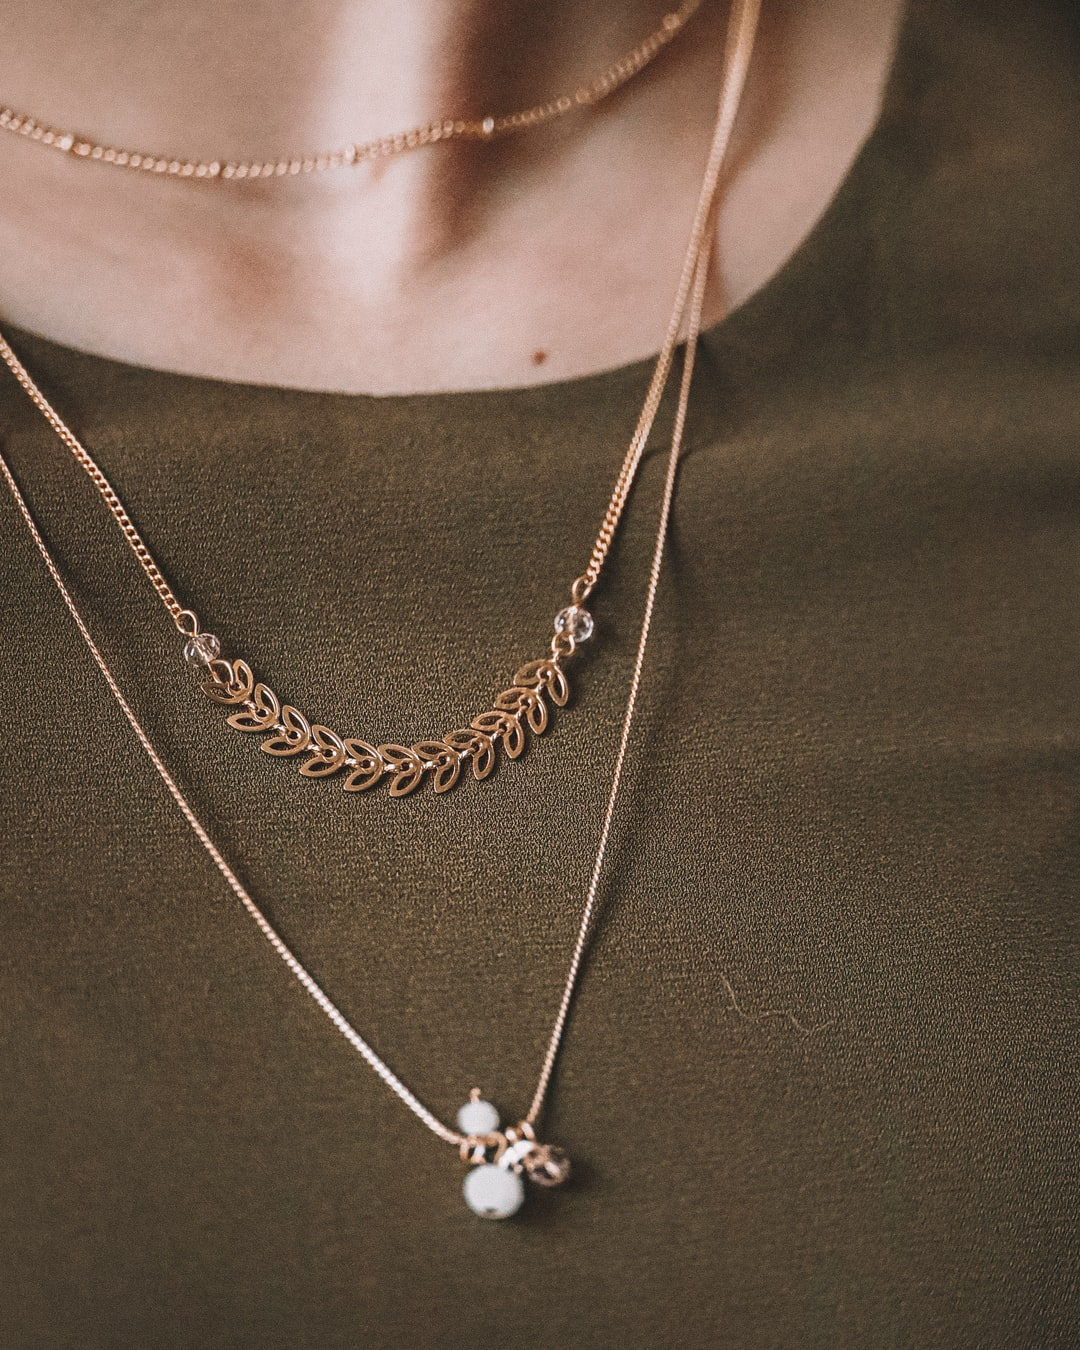 How To Find The Perfect Necklace Length